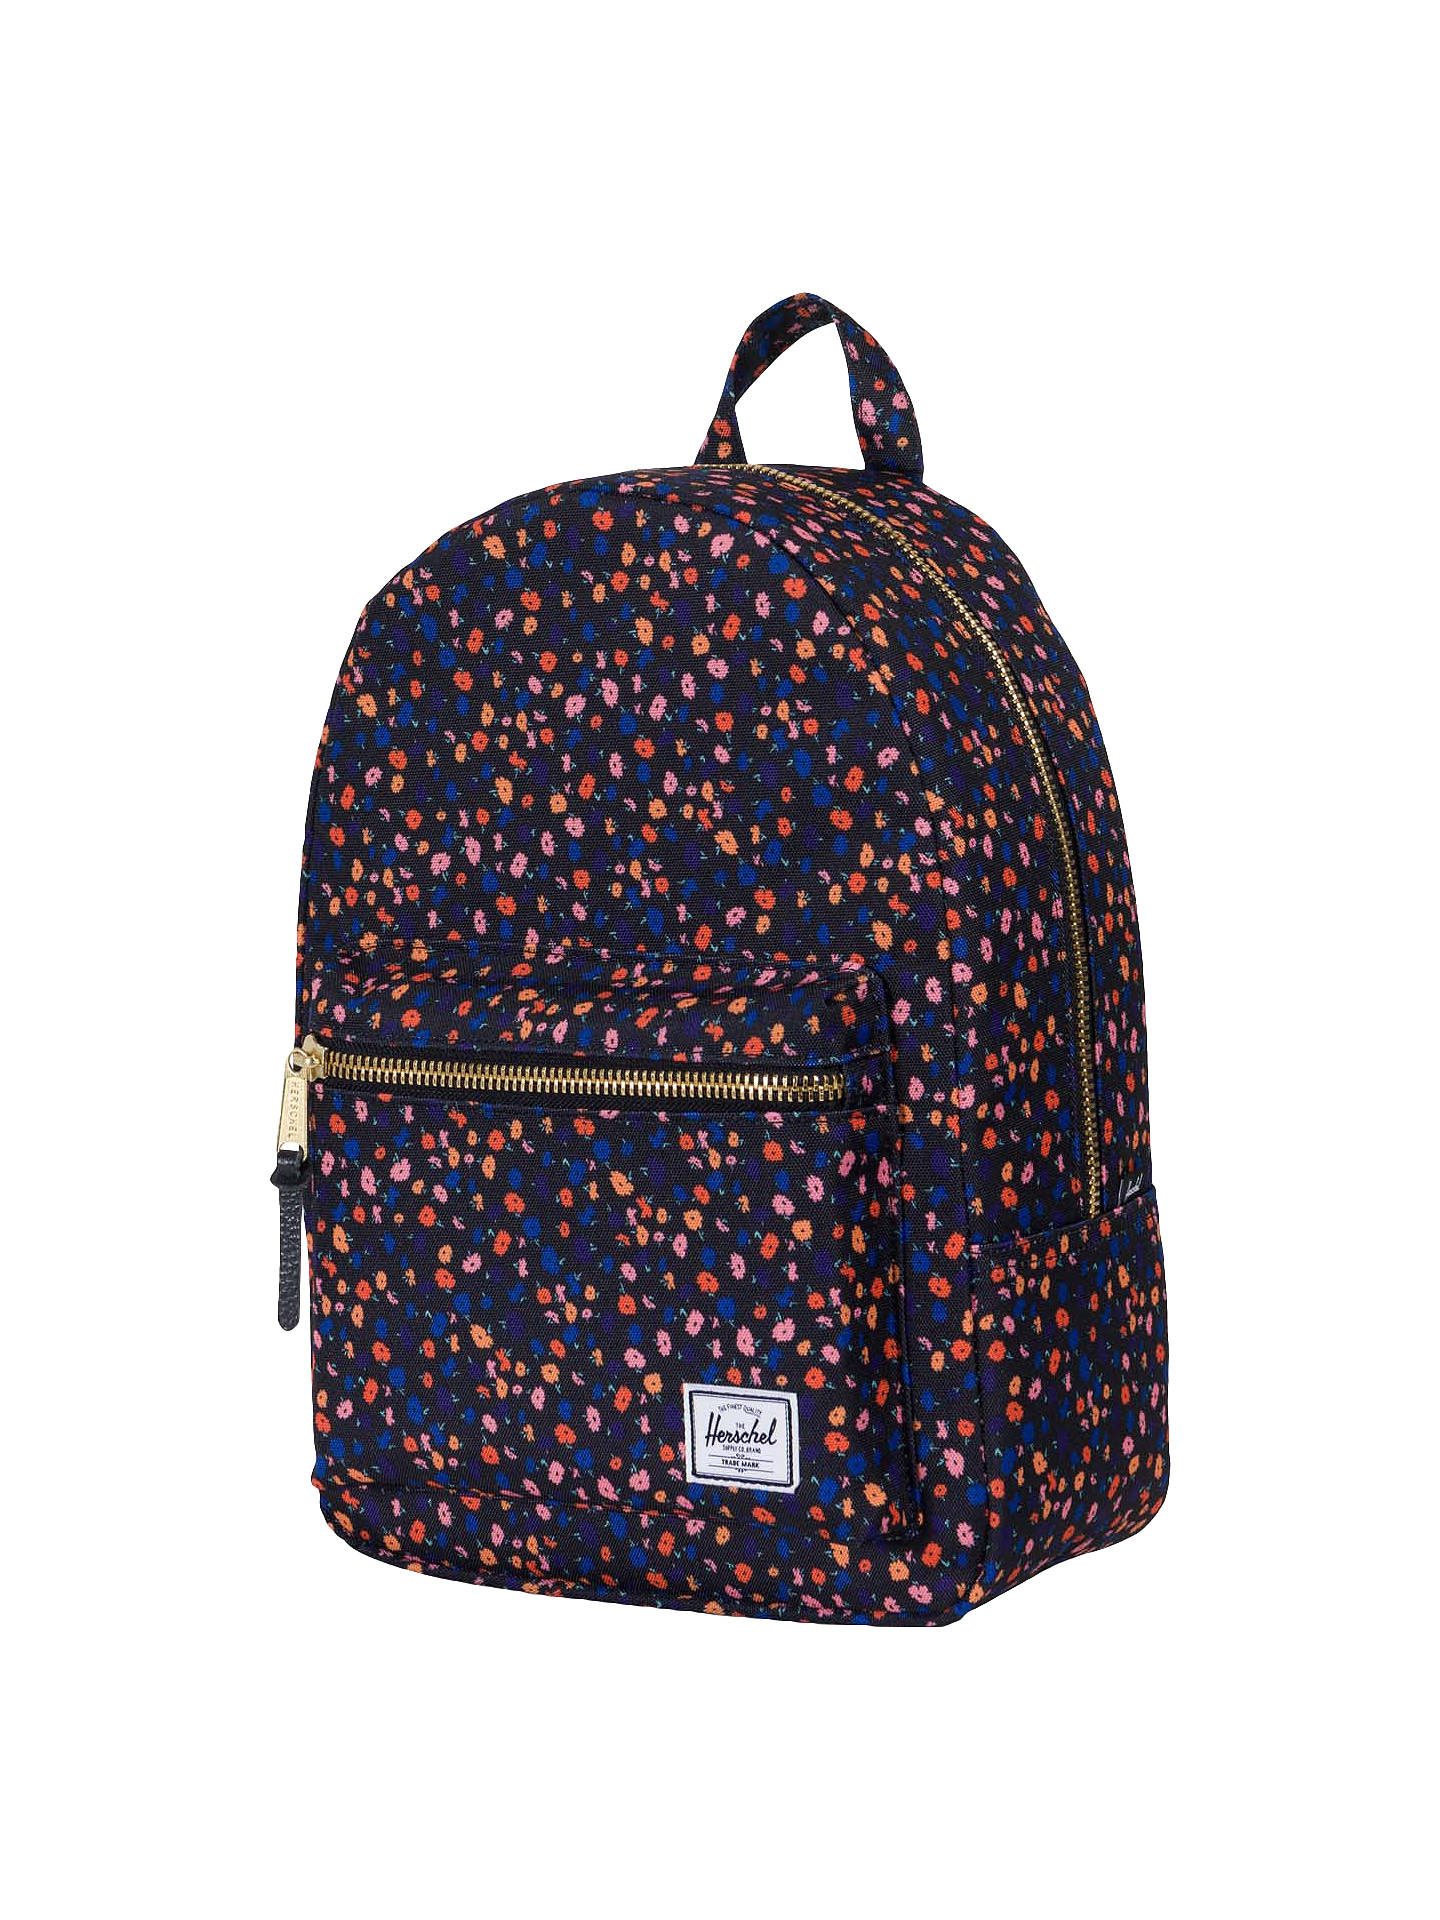 f6a7e9322b7 ... Buy Herschel Supply Co. Grove Backpack